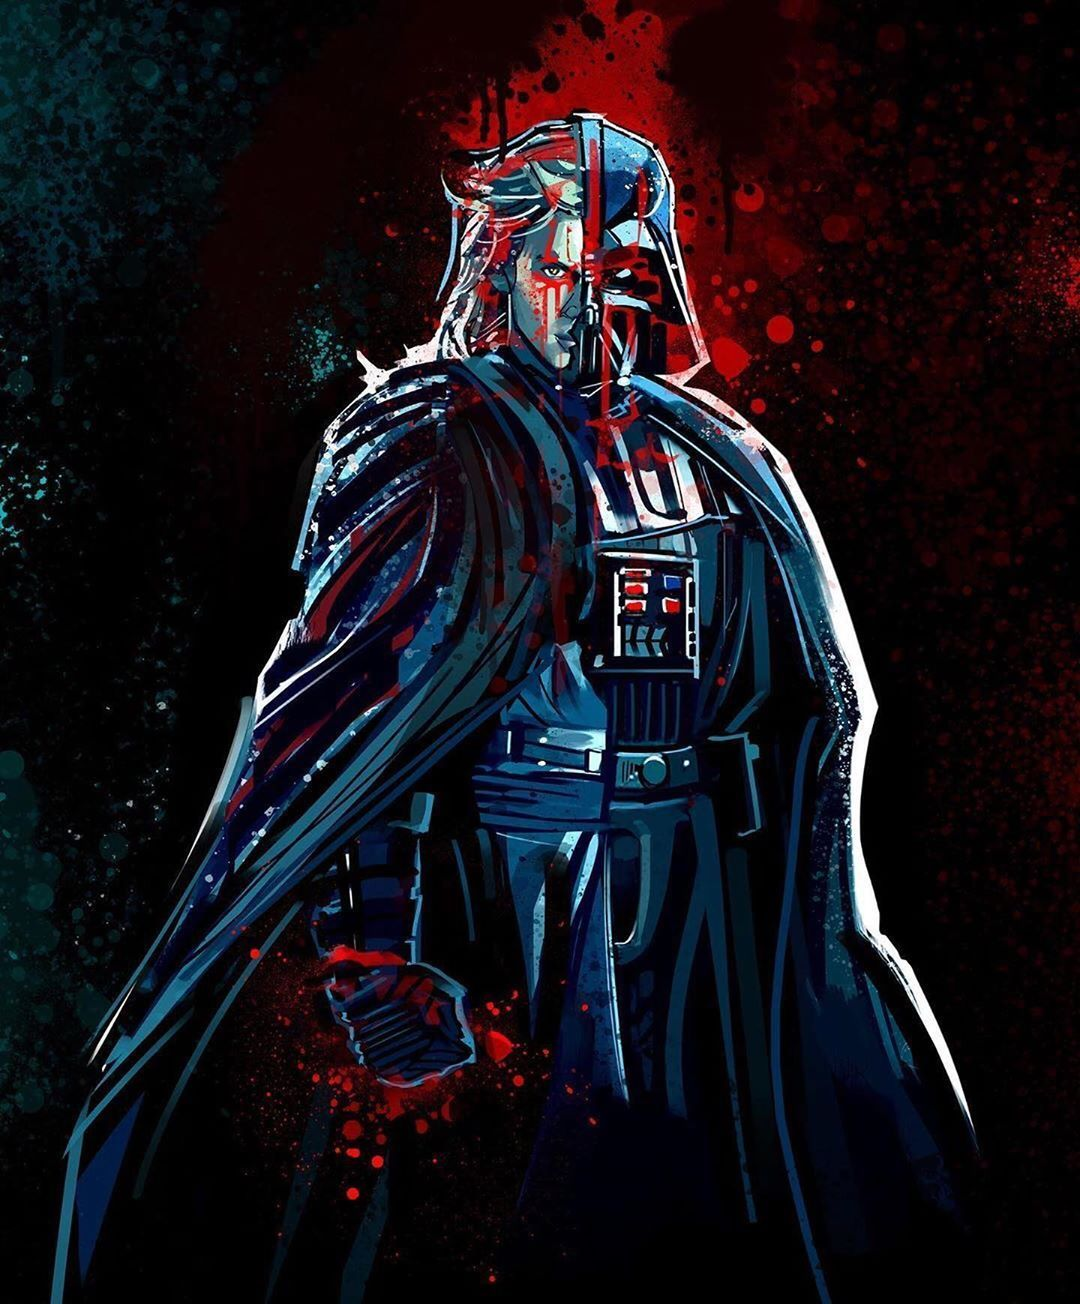 Wallpaper Marvel Comics Star Wars Dark Iphone Lion